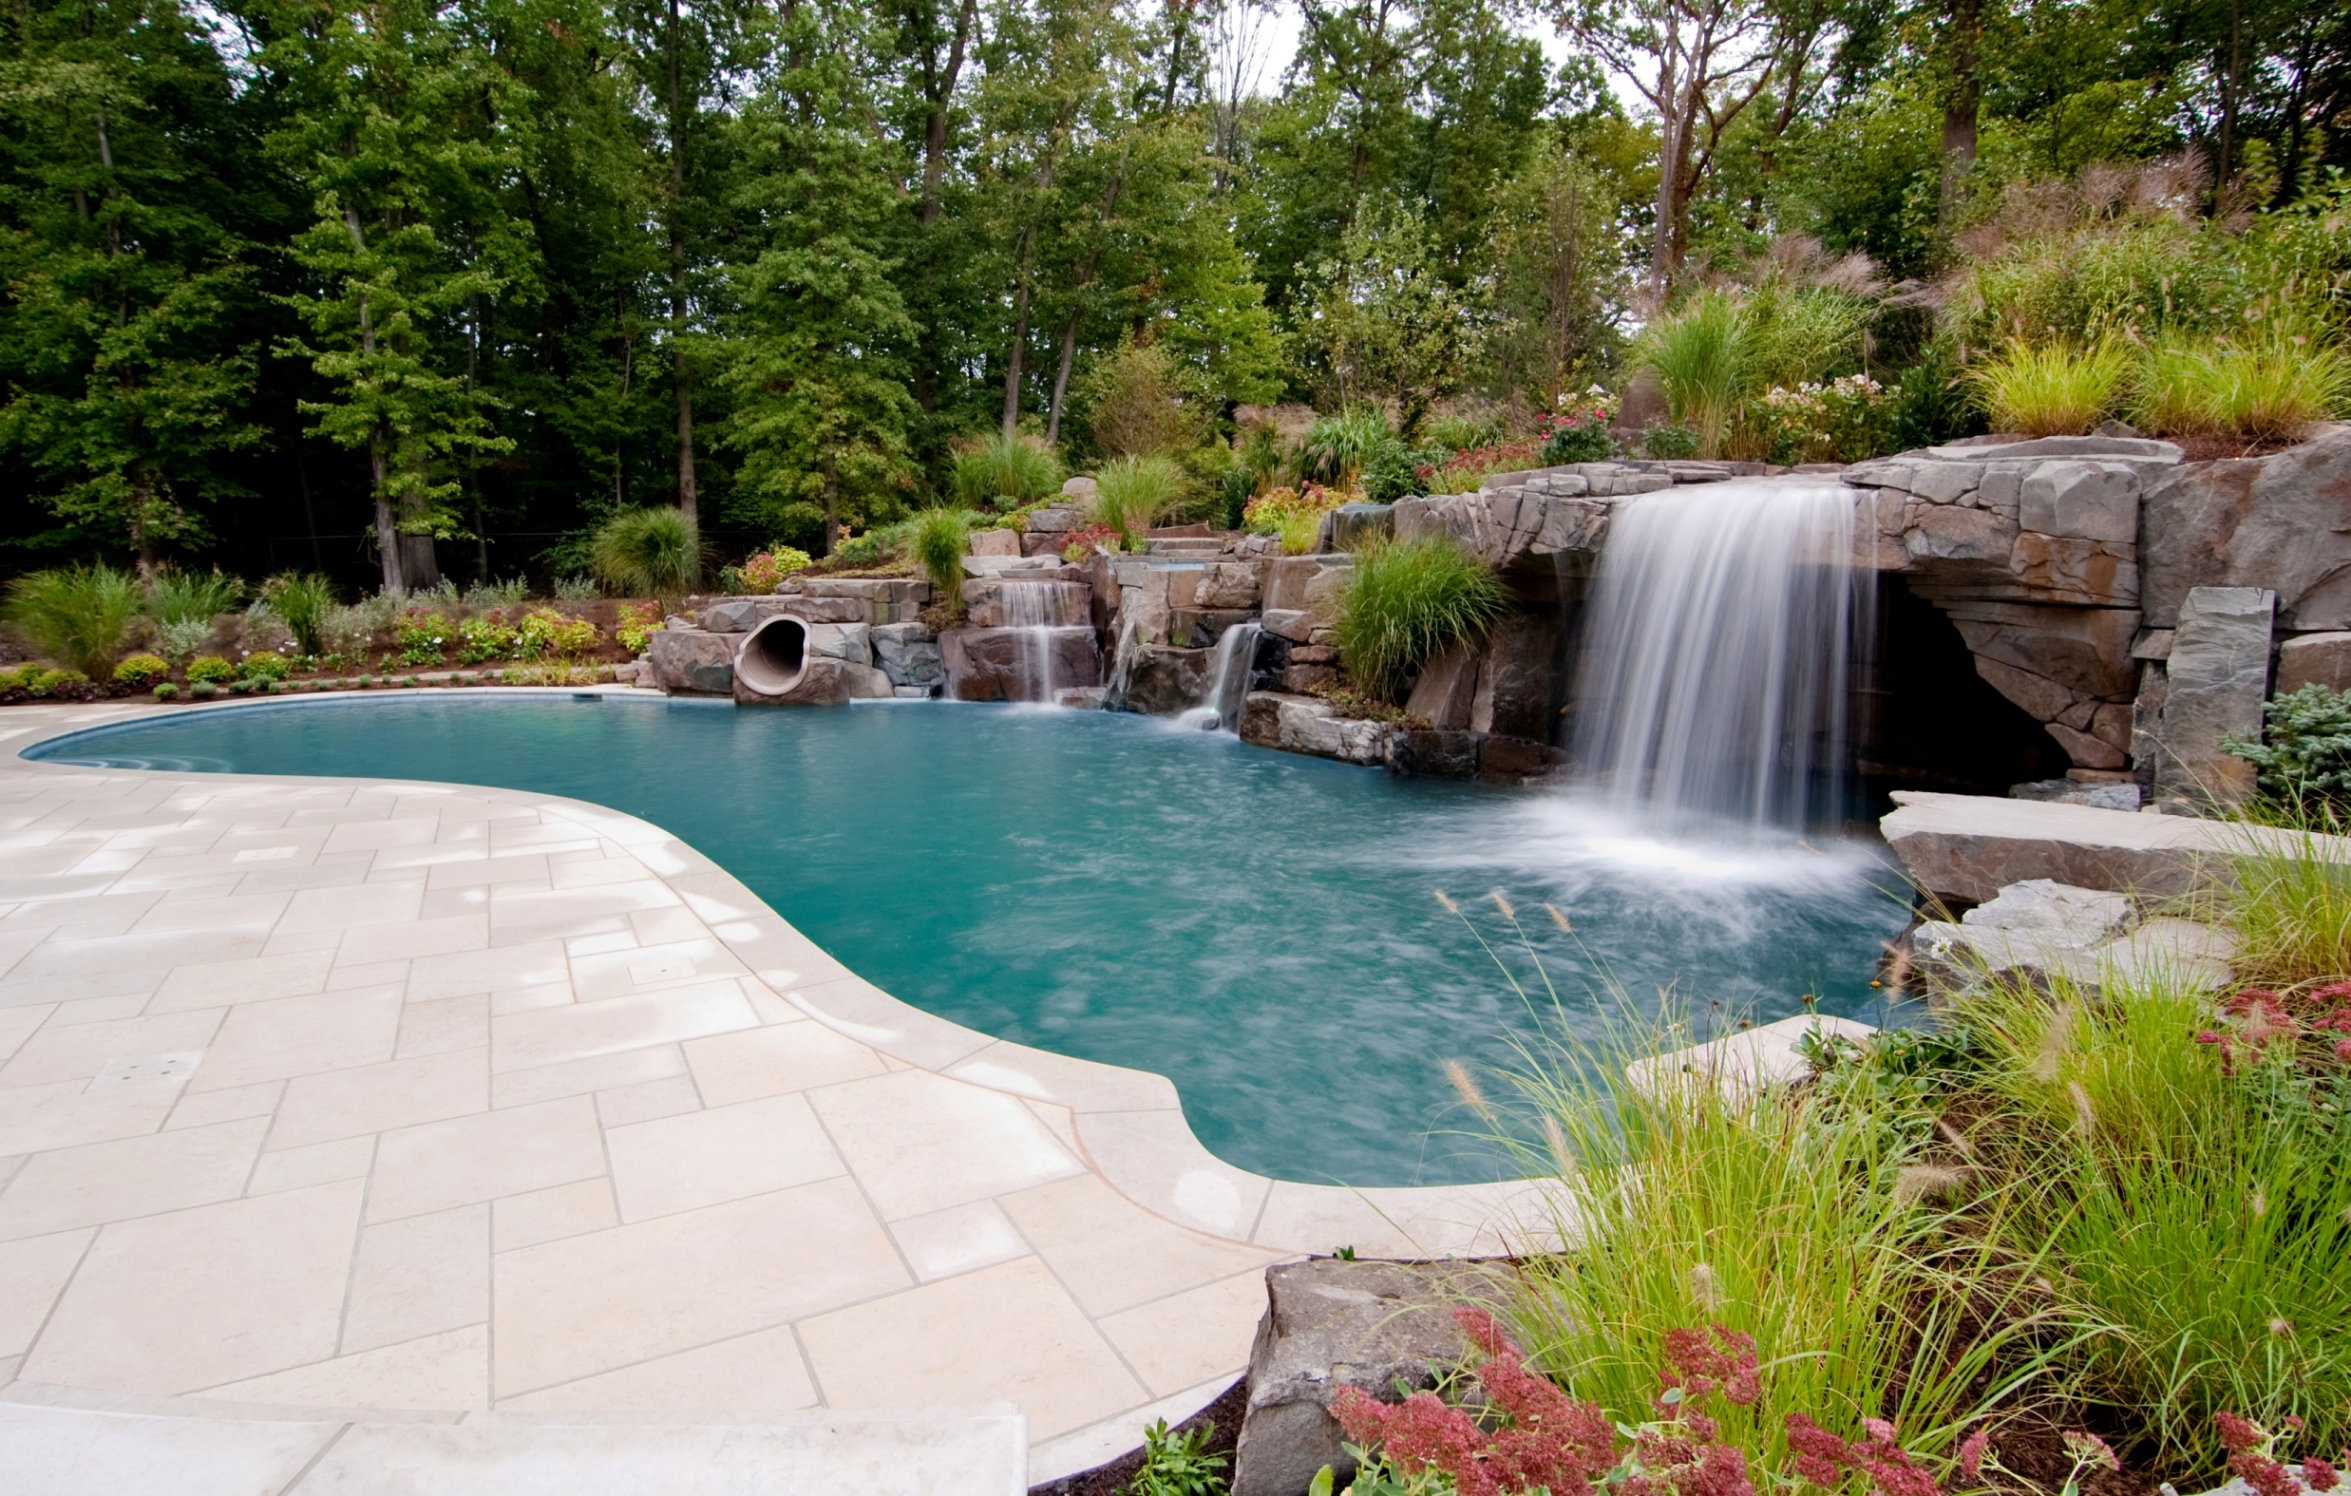 New jersey inground pool company earns international award for Swimming pool images